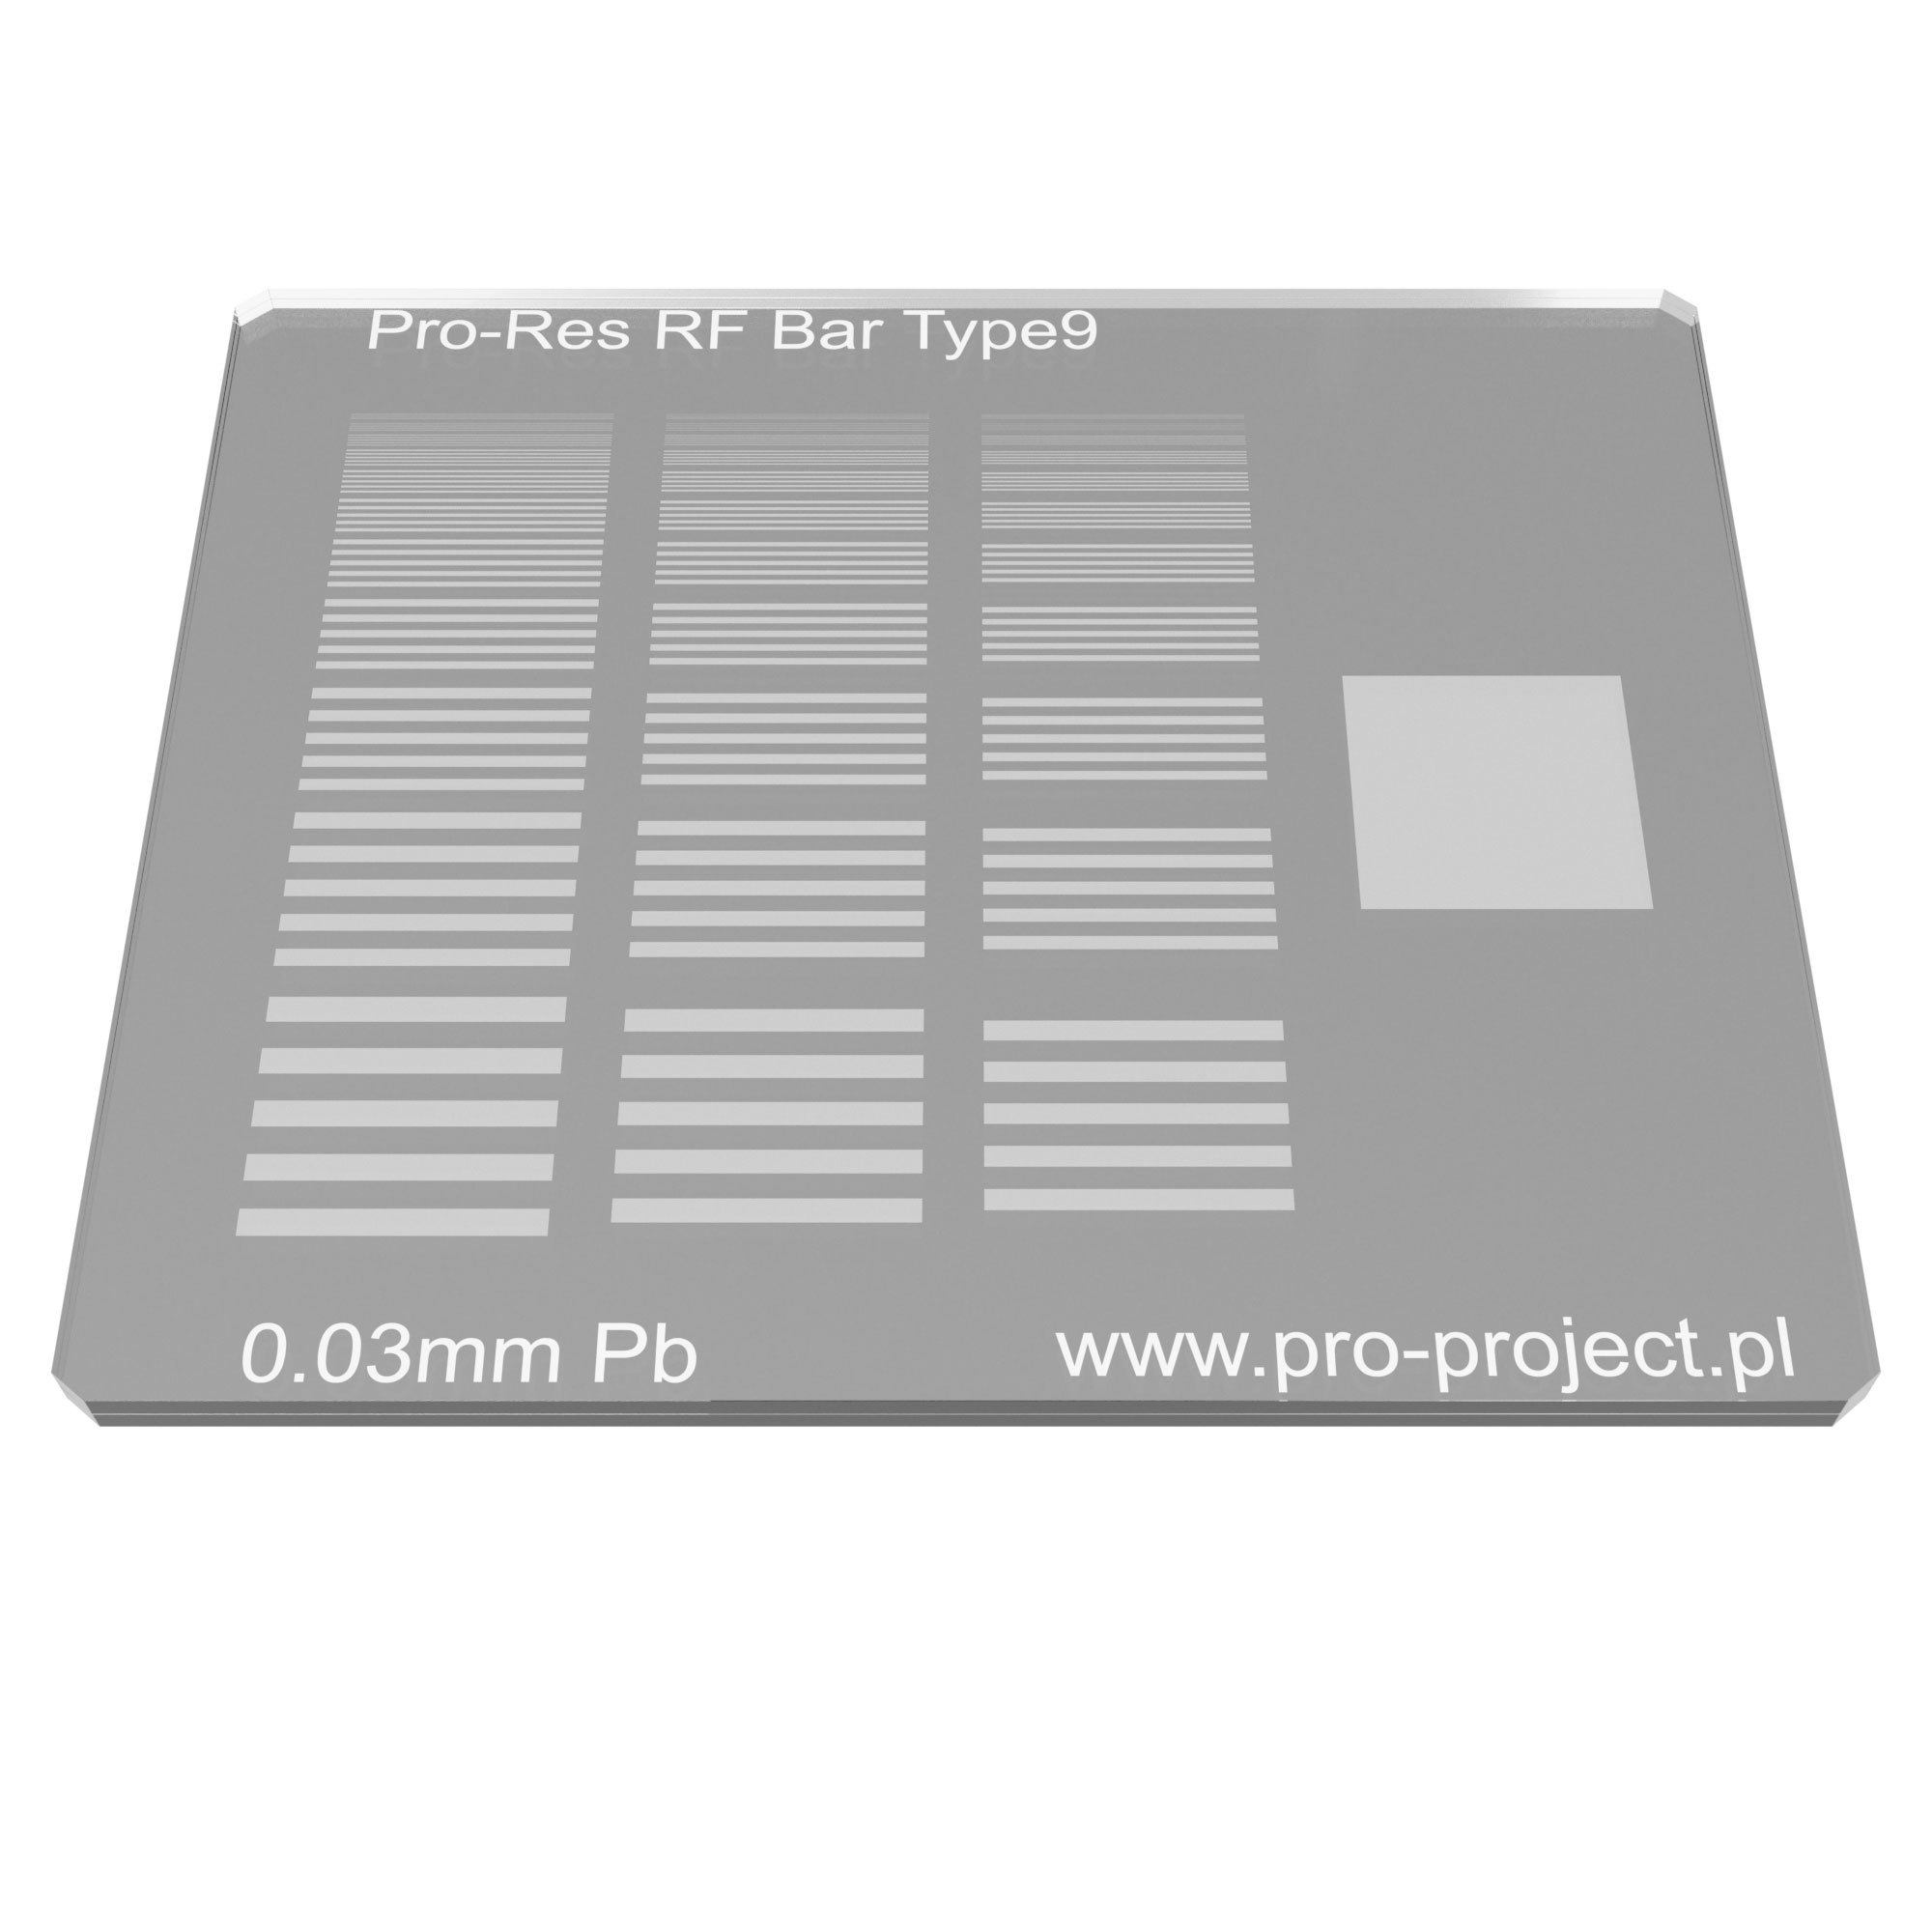 Pro-Res RF BarType 9